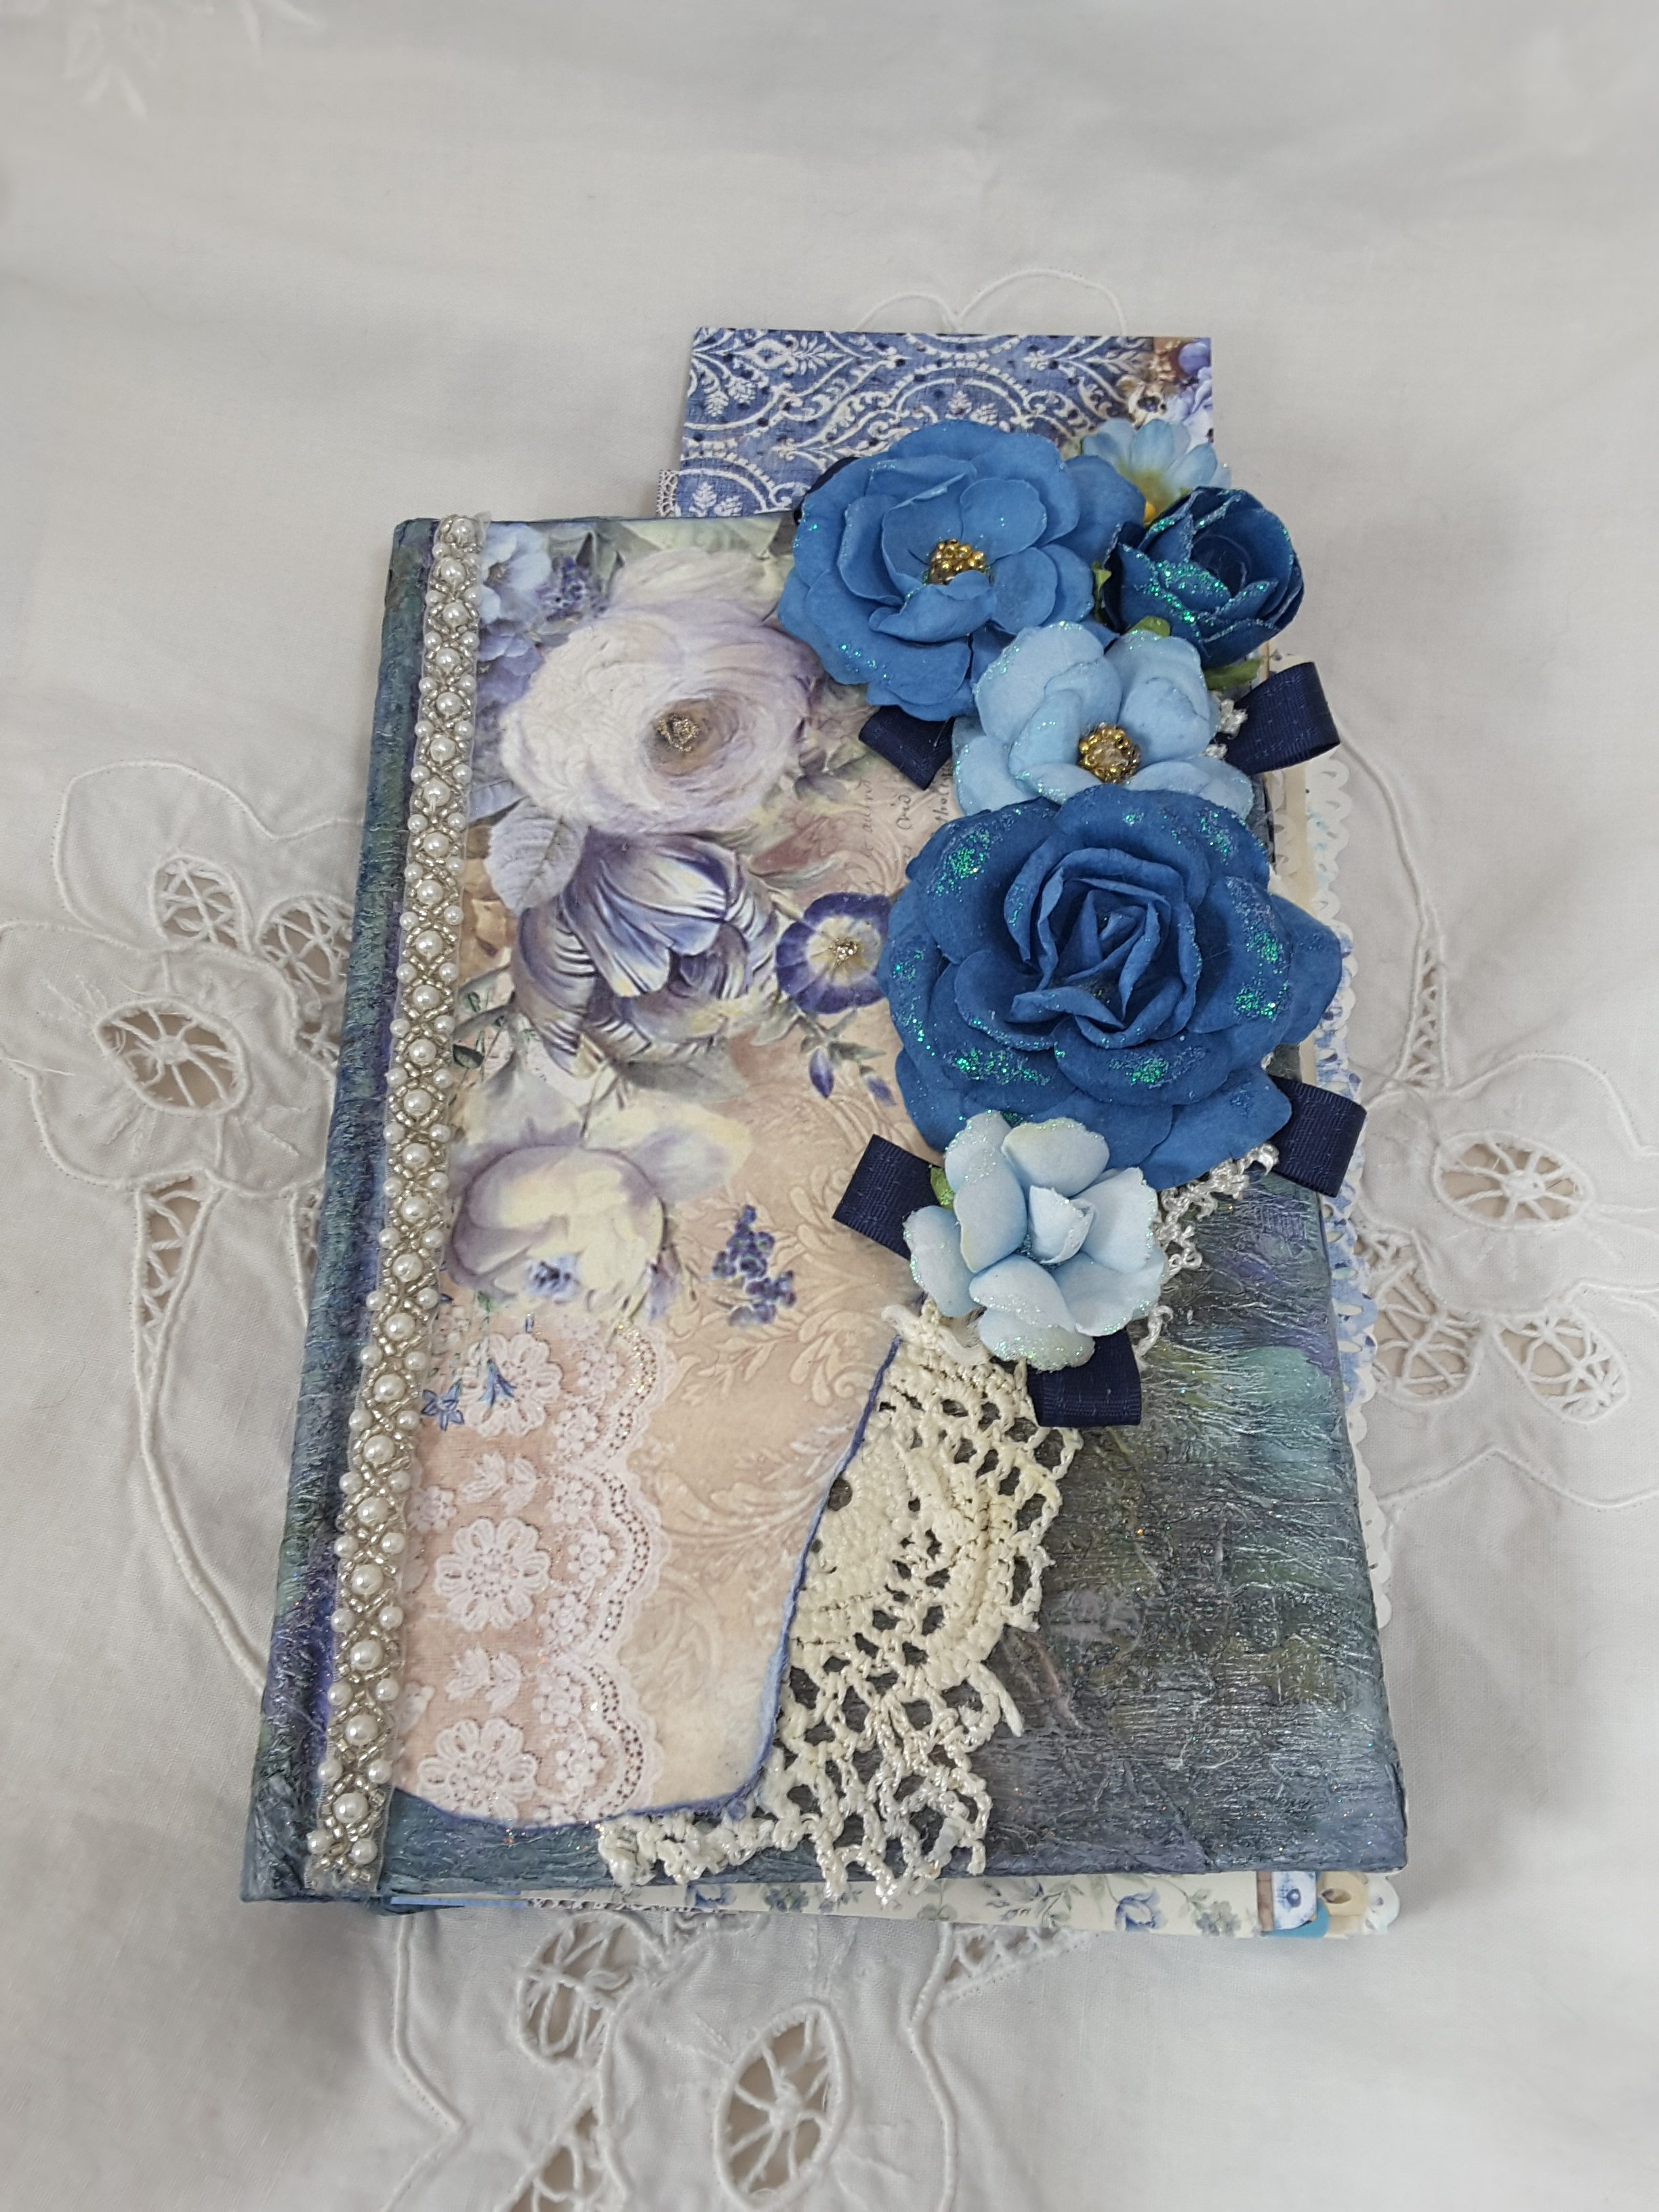 Awesome Junk Journal Starter Kits